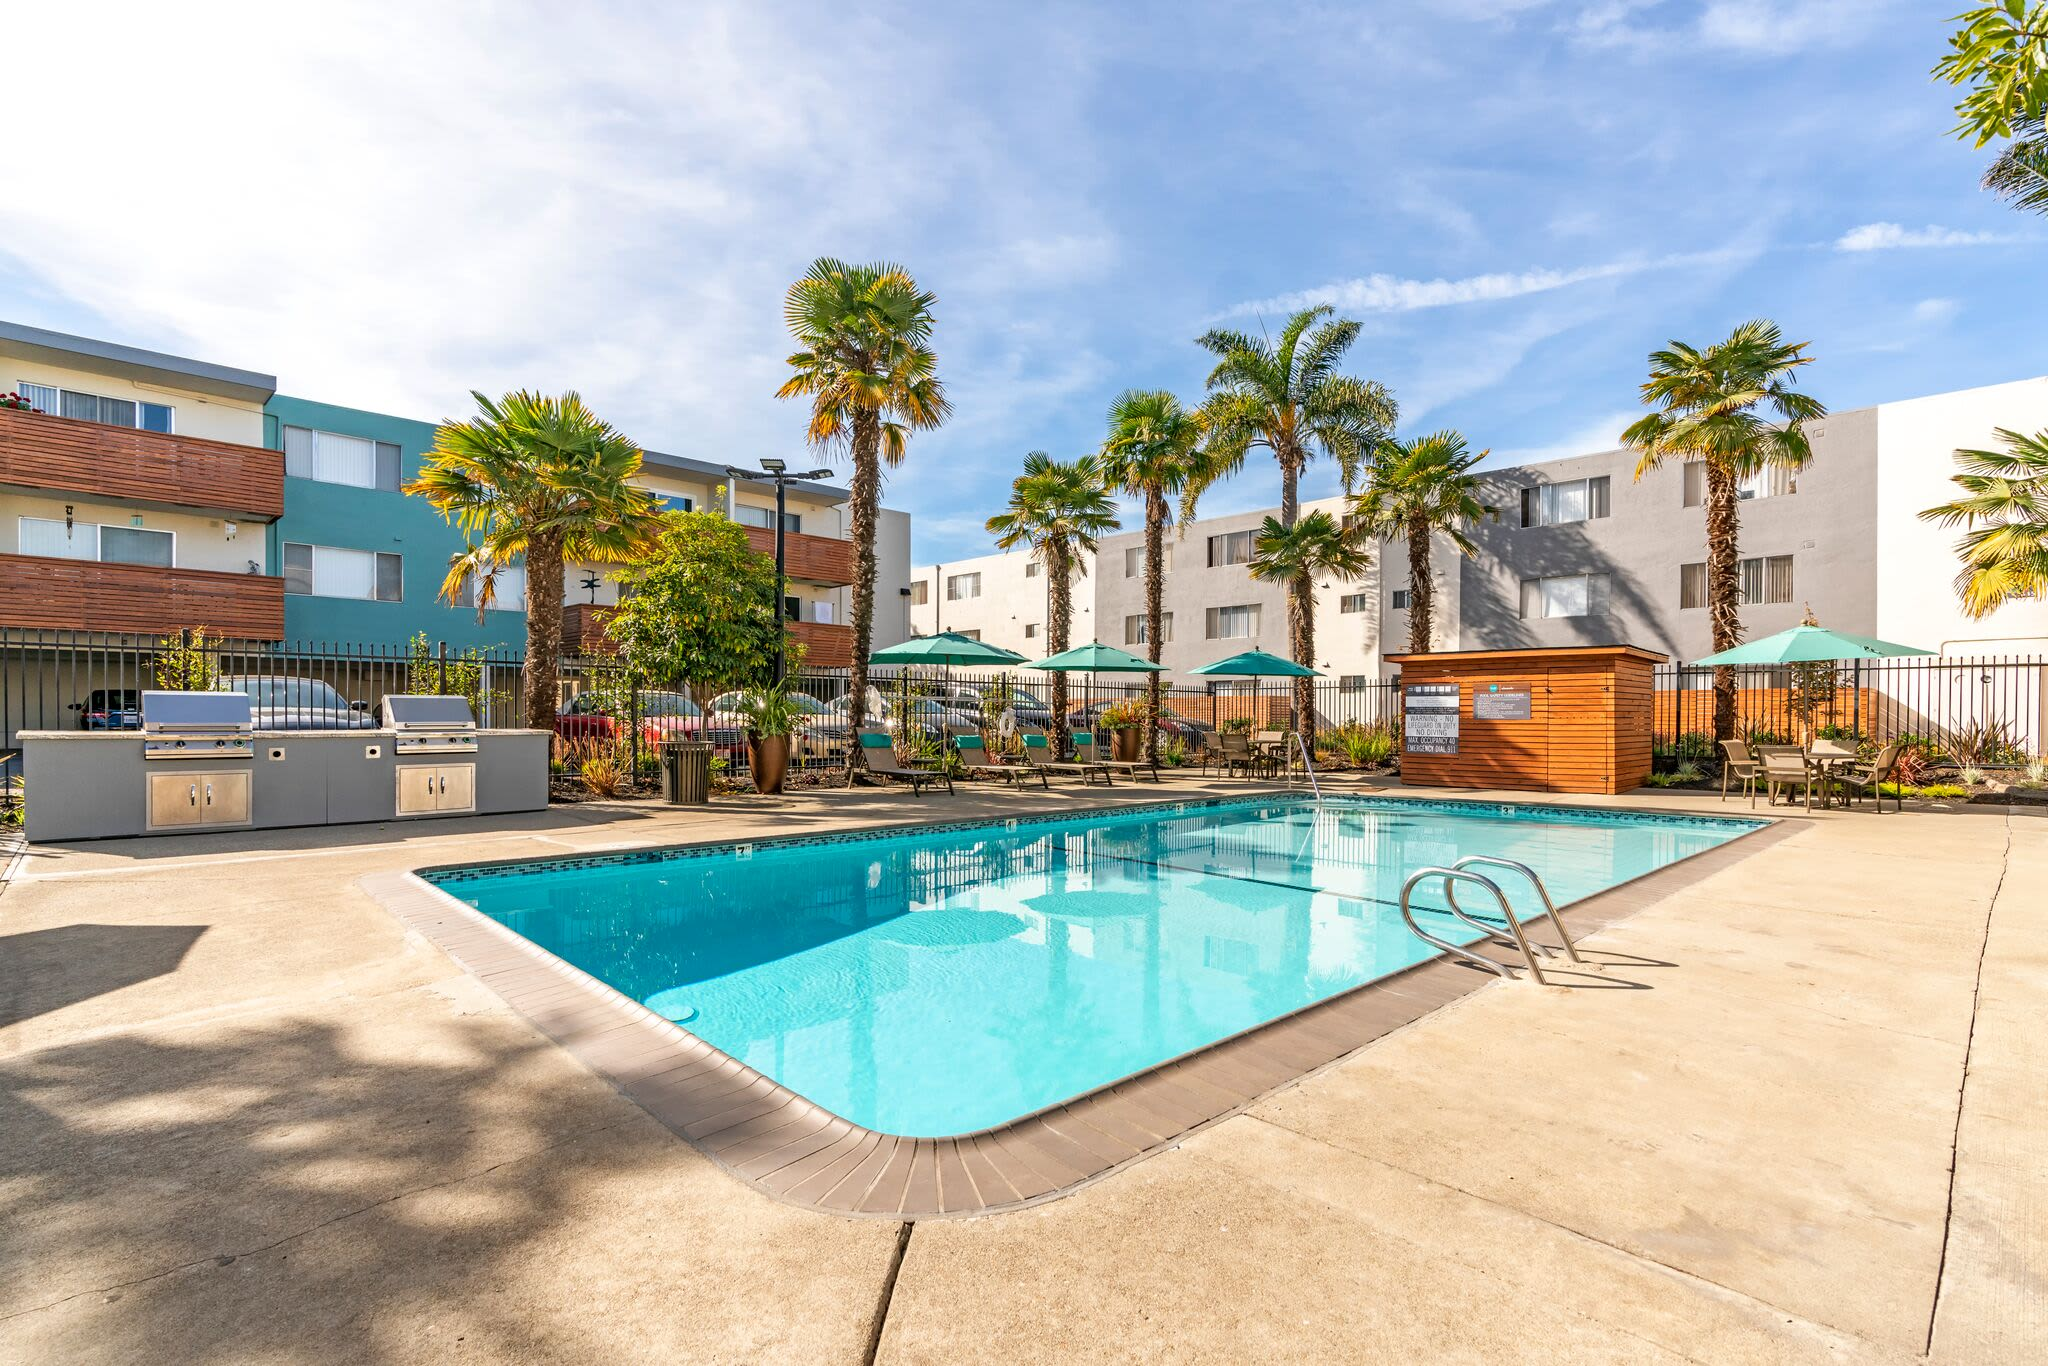 Luxury swimming pool at Vue Alameda in Alameda, California